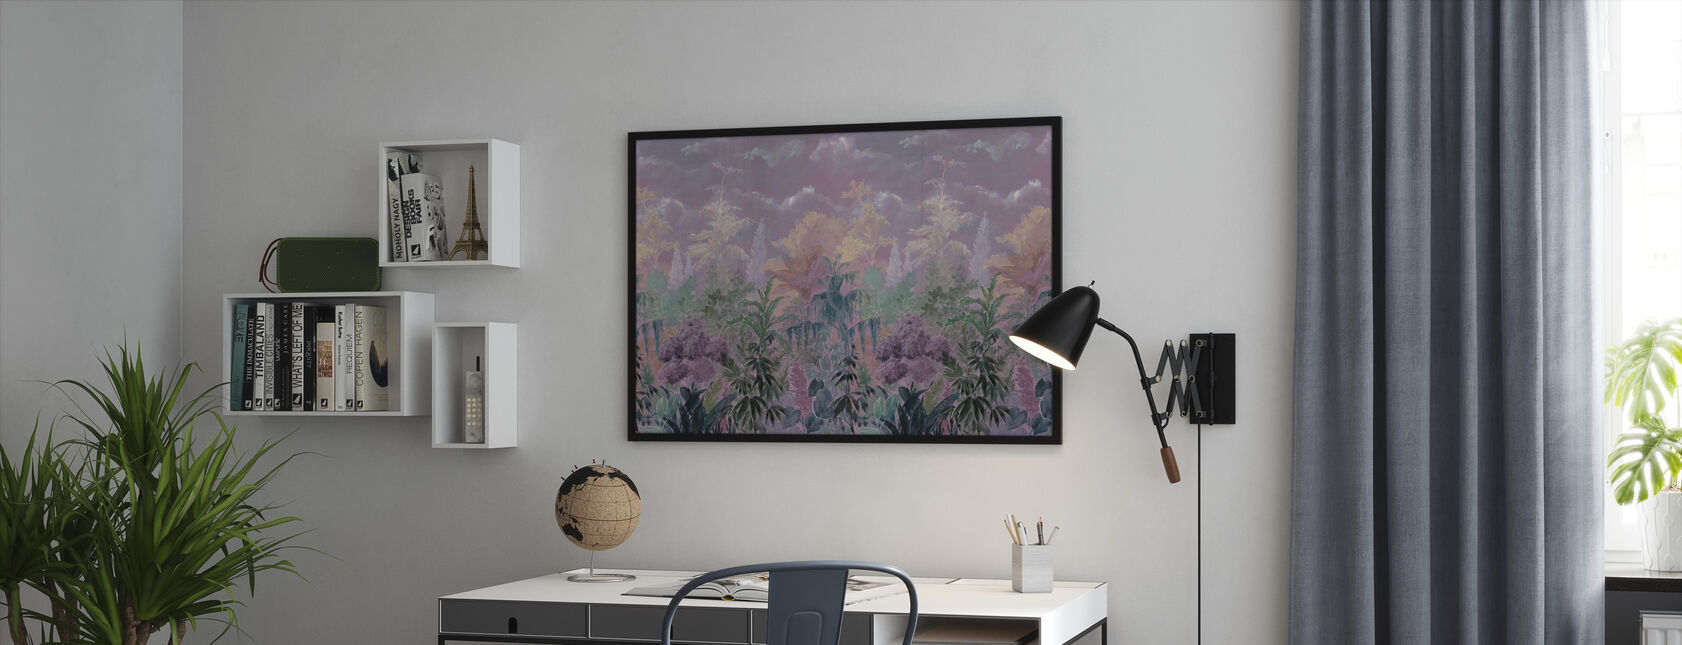 Flourishing Vegetation - Framed print - Office